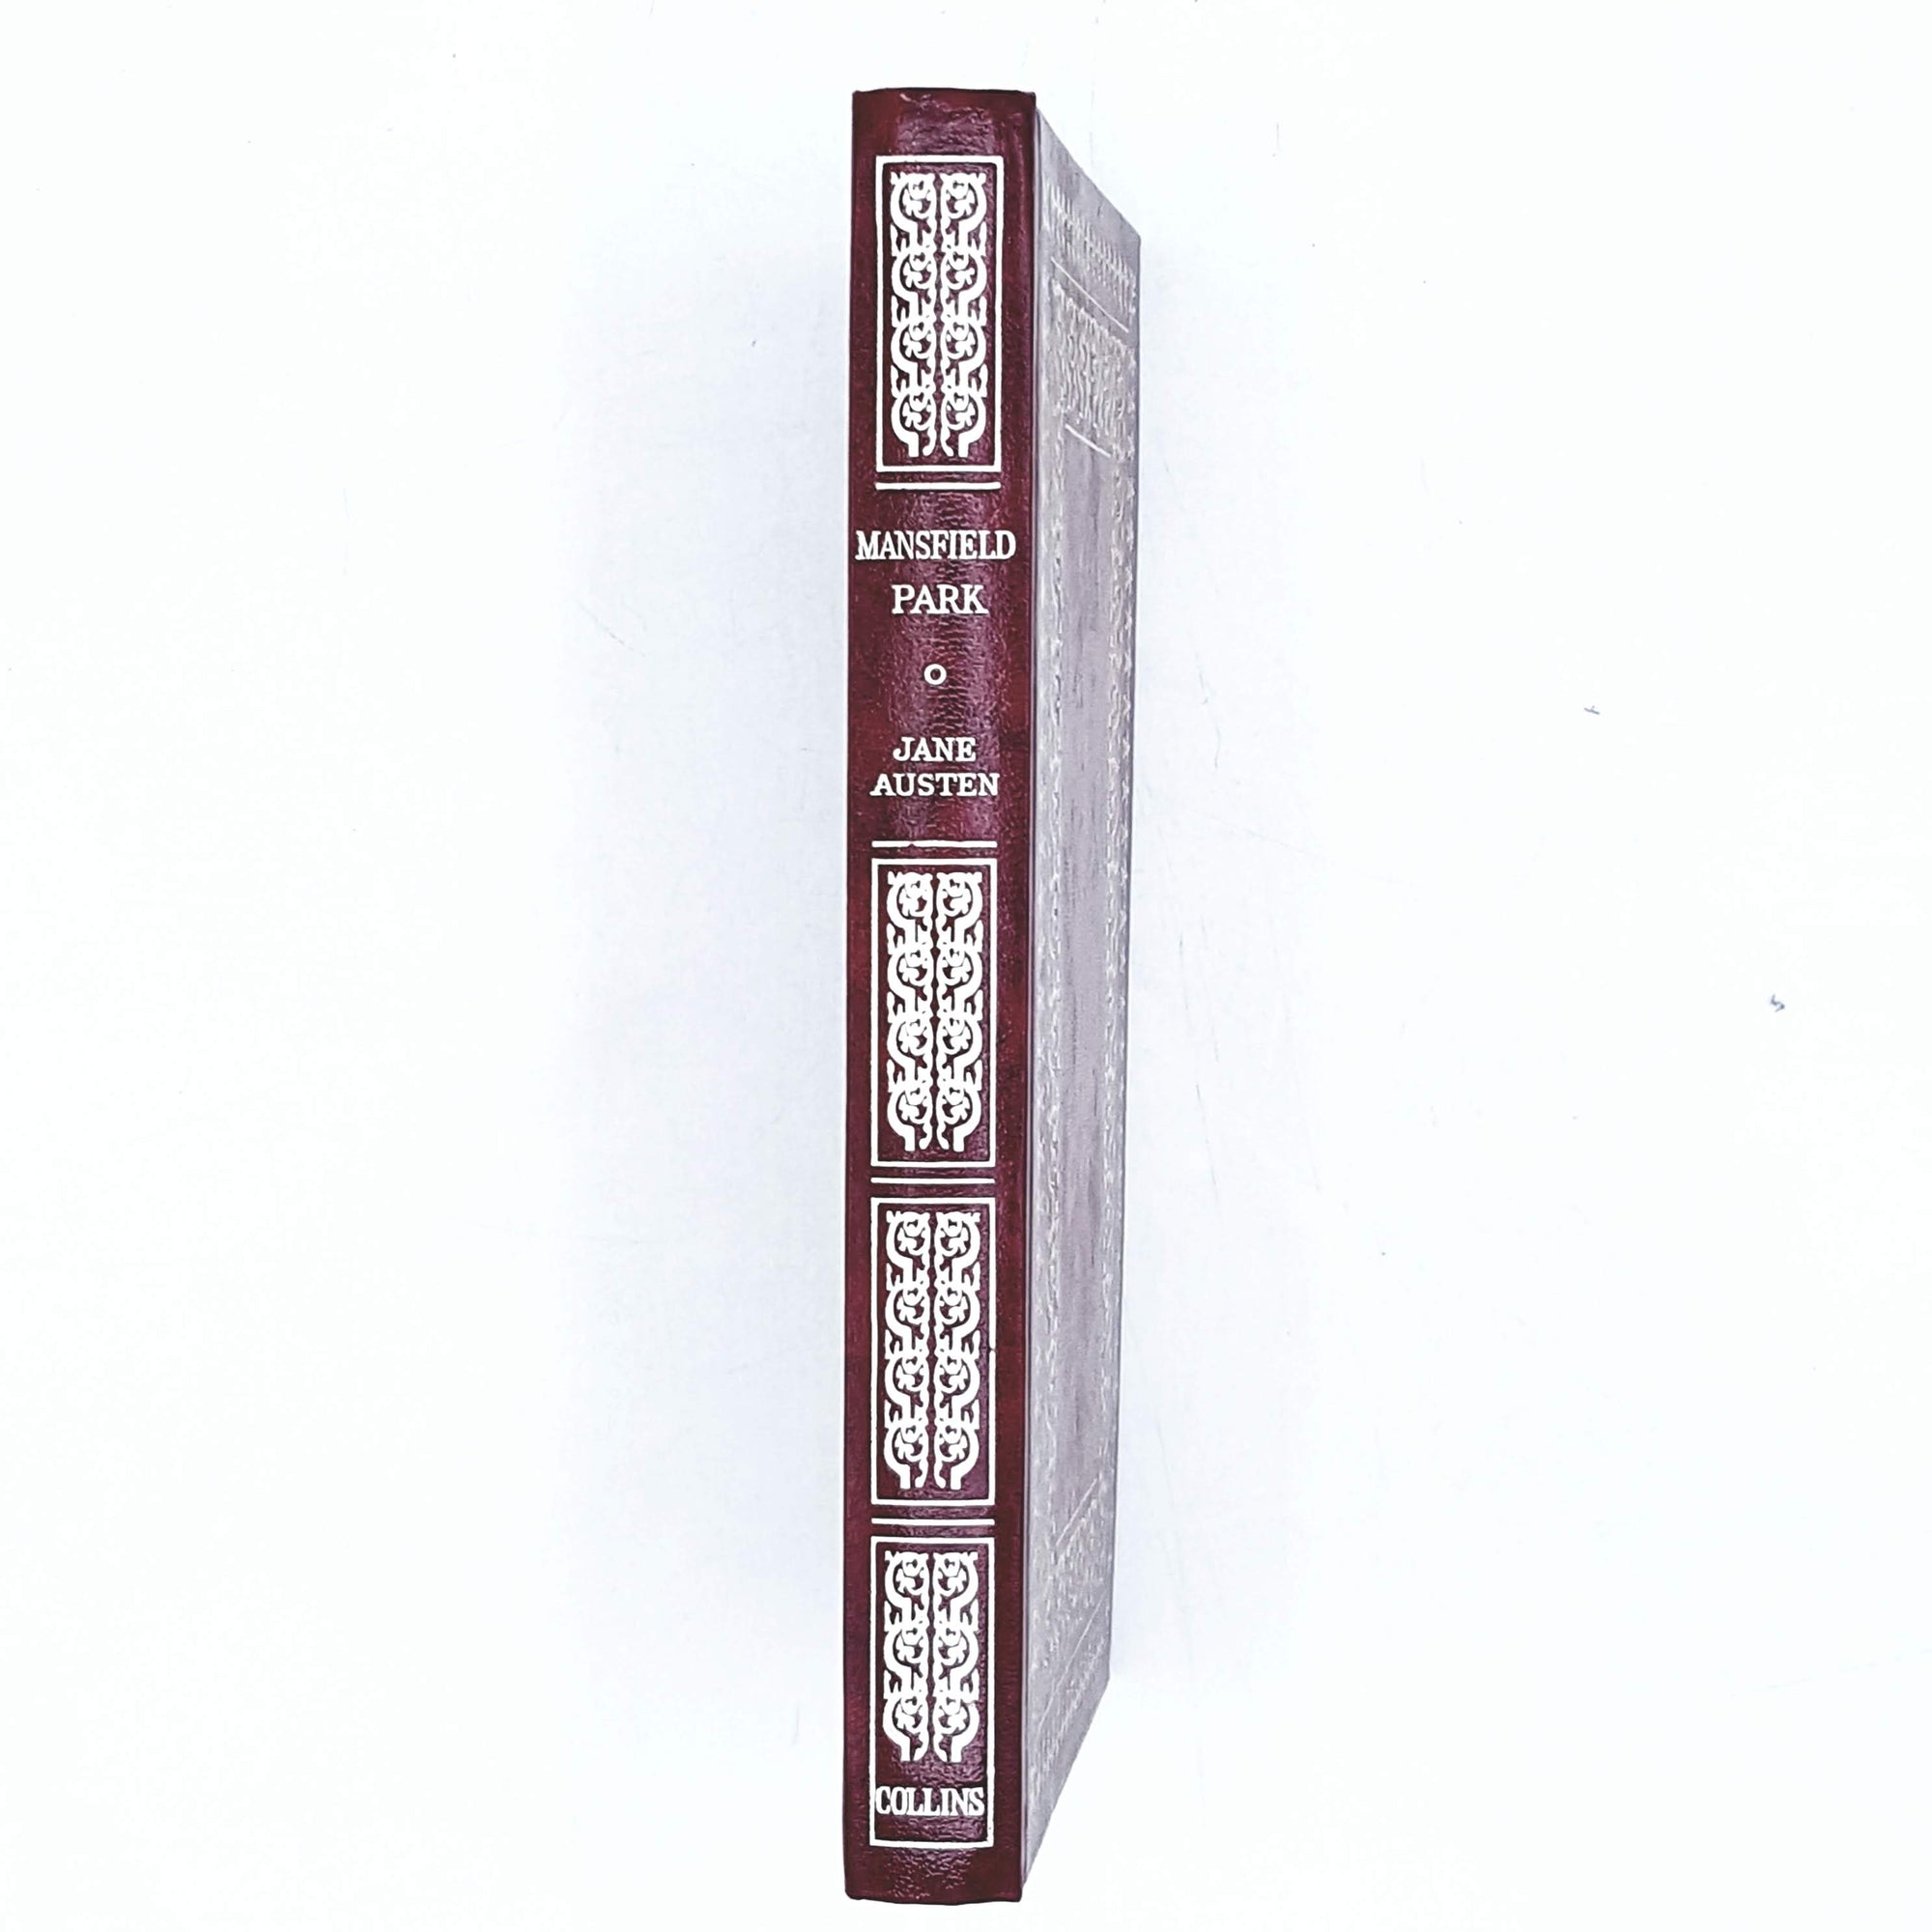 red-jane-austen-pride-vintage-book-country-house-library